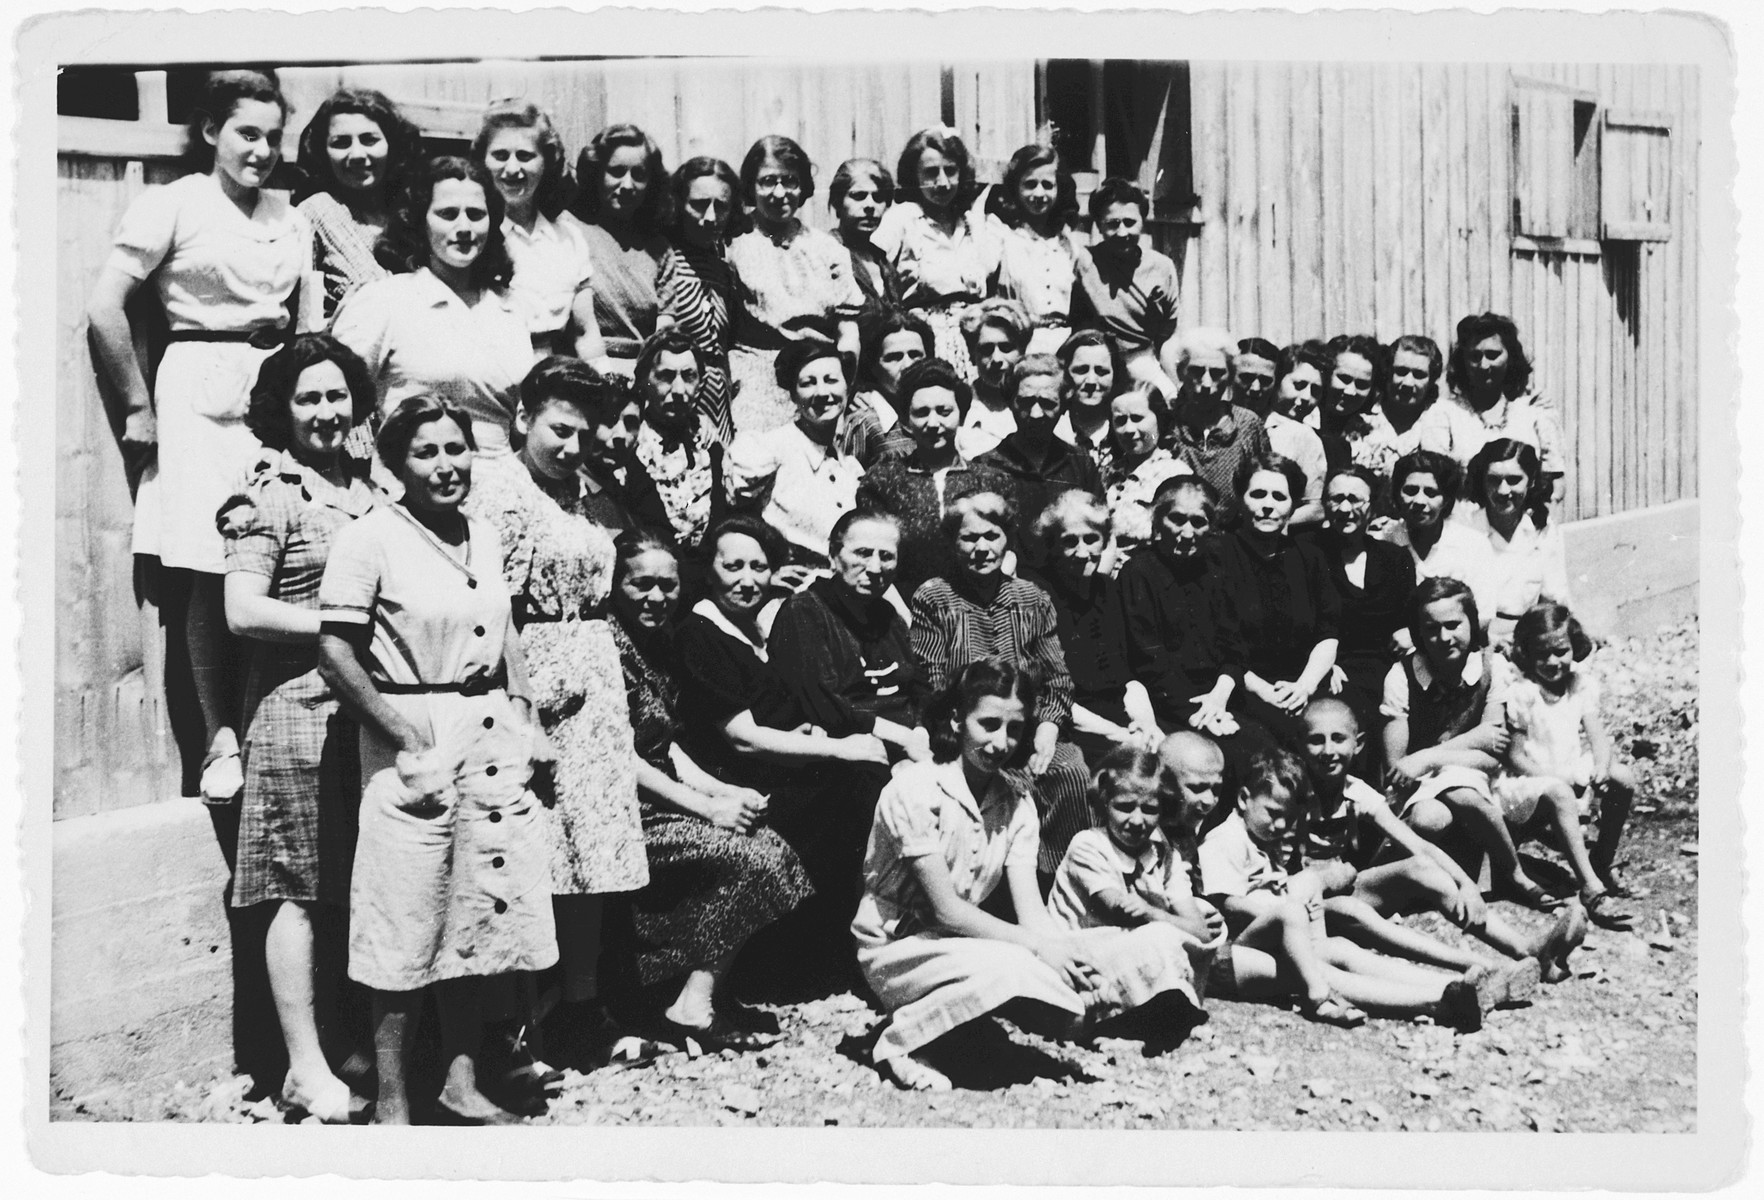 Group portrait of female and child prisoners standing and sitting outside a barrack in the Kraljevica concentration camp.  Among those pictured are Nada and Lea Gostl, school friends of the donor. Also pictured are Mira and Zora Mahler and their mother, Luisa Mahler.